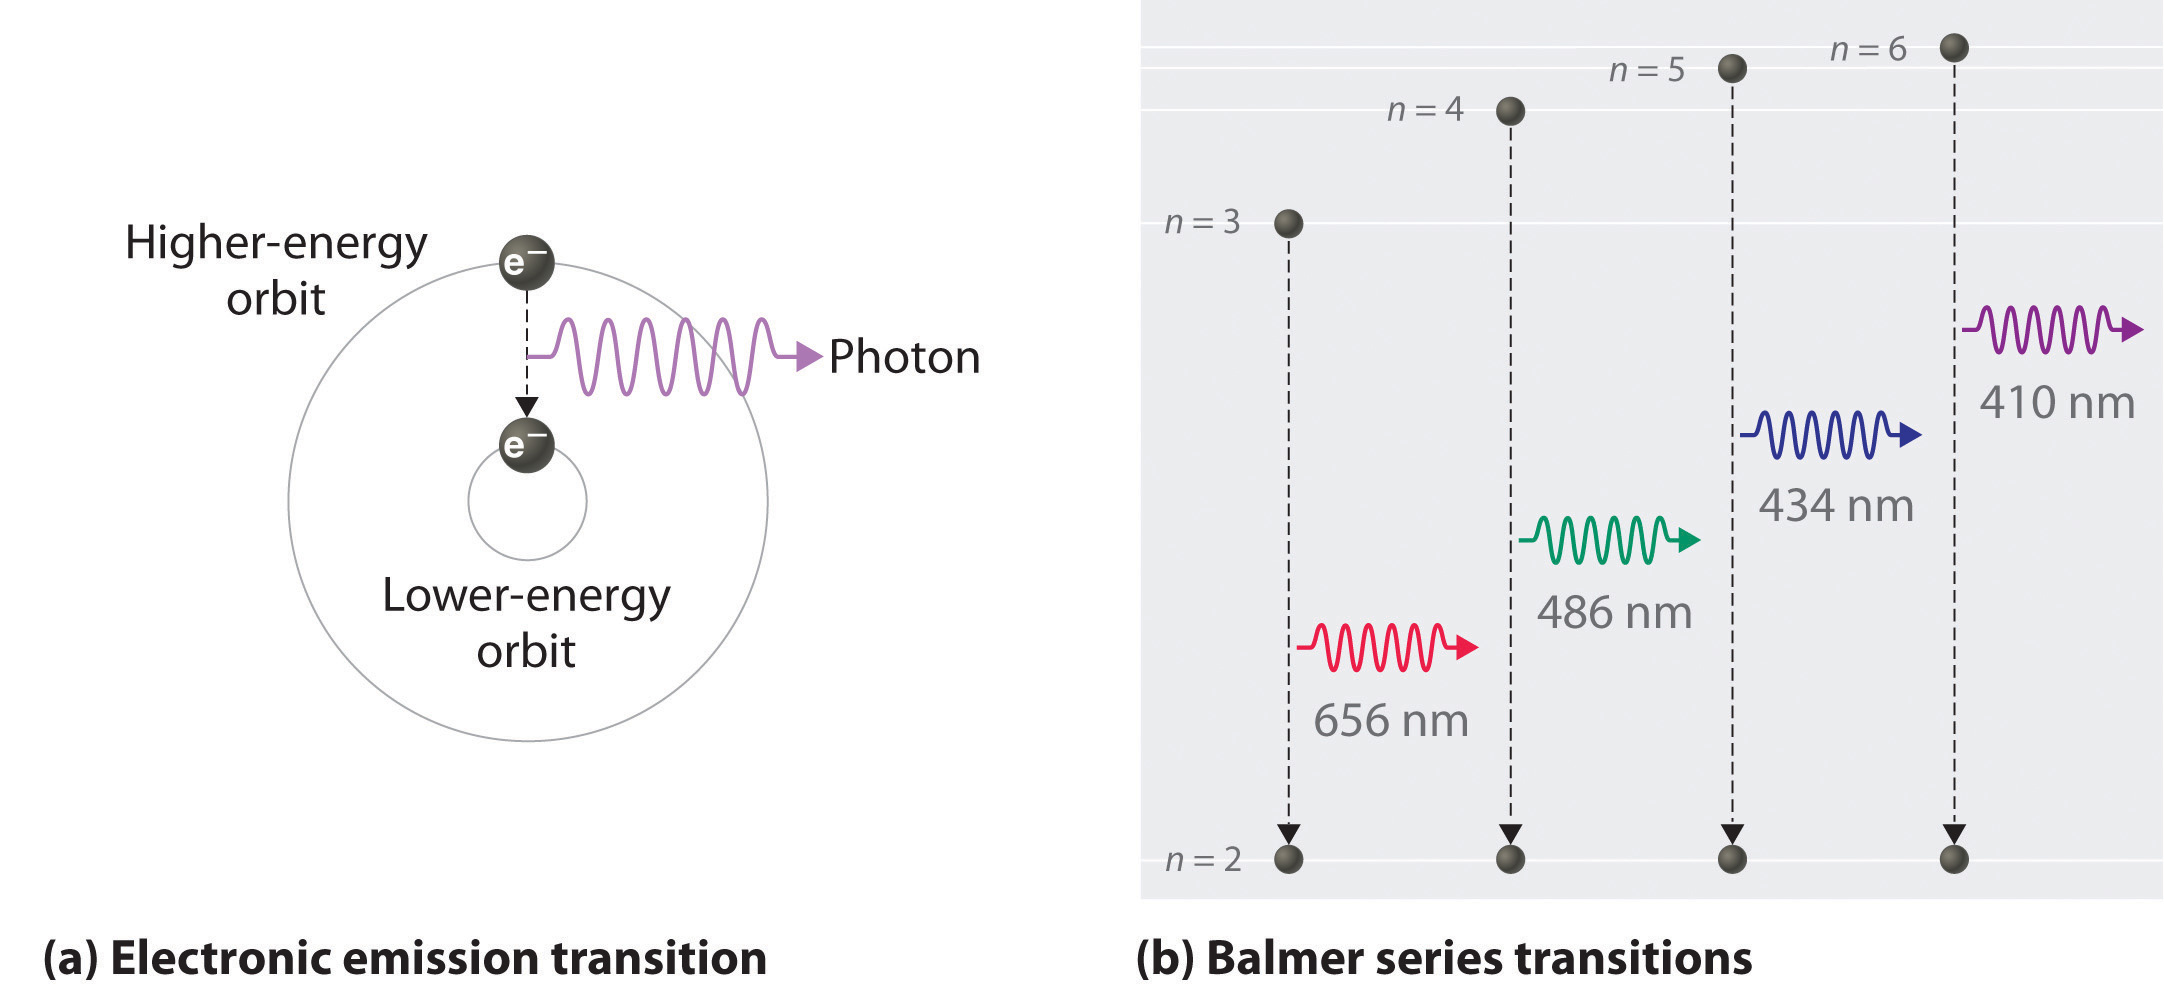 A photon has a frequency of 2.68 * 10^6 Hz. What is its energy?